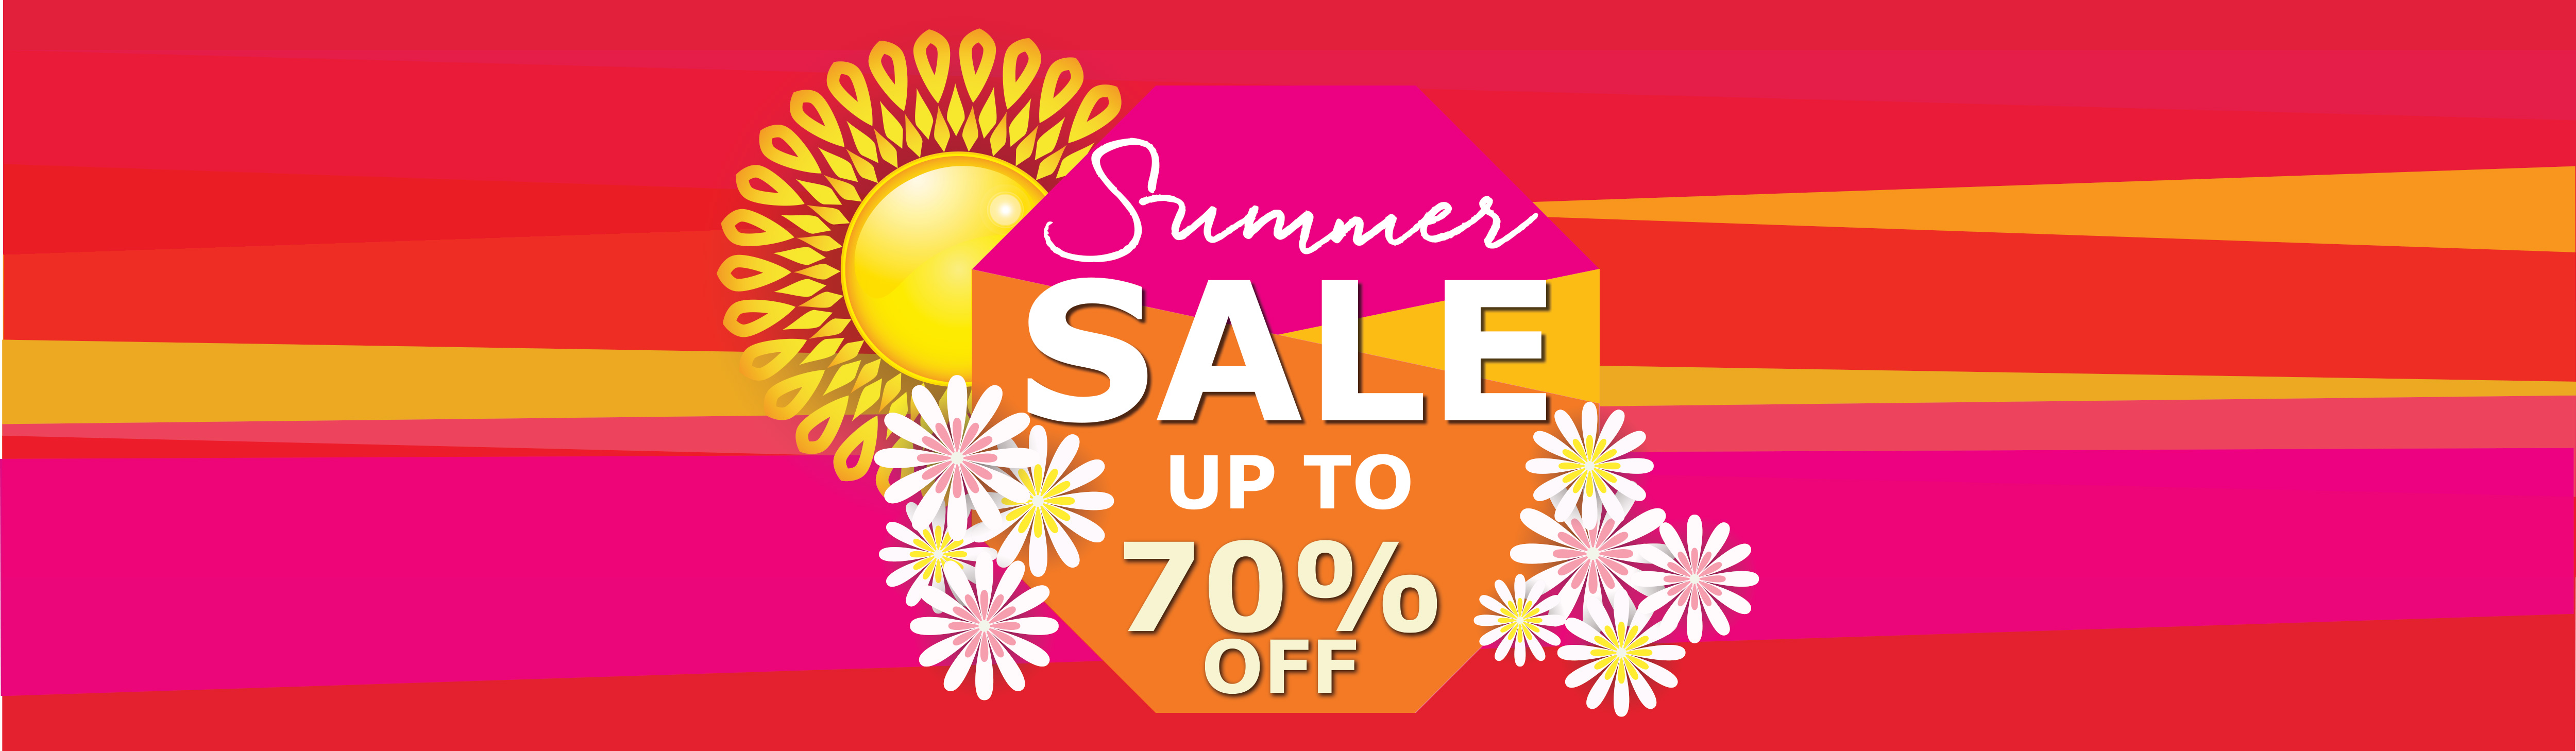 fabulous sale - 70 % off